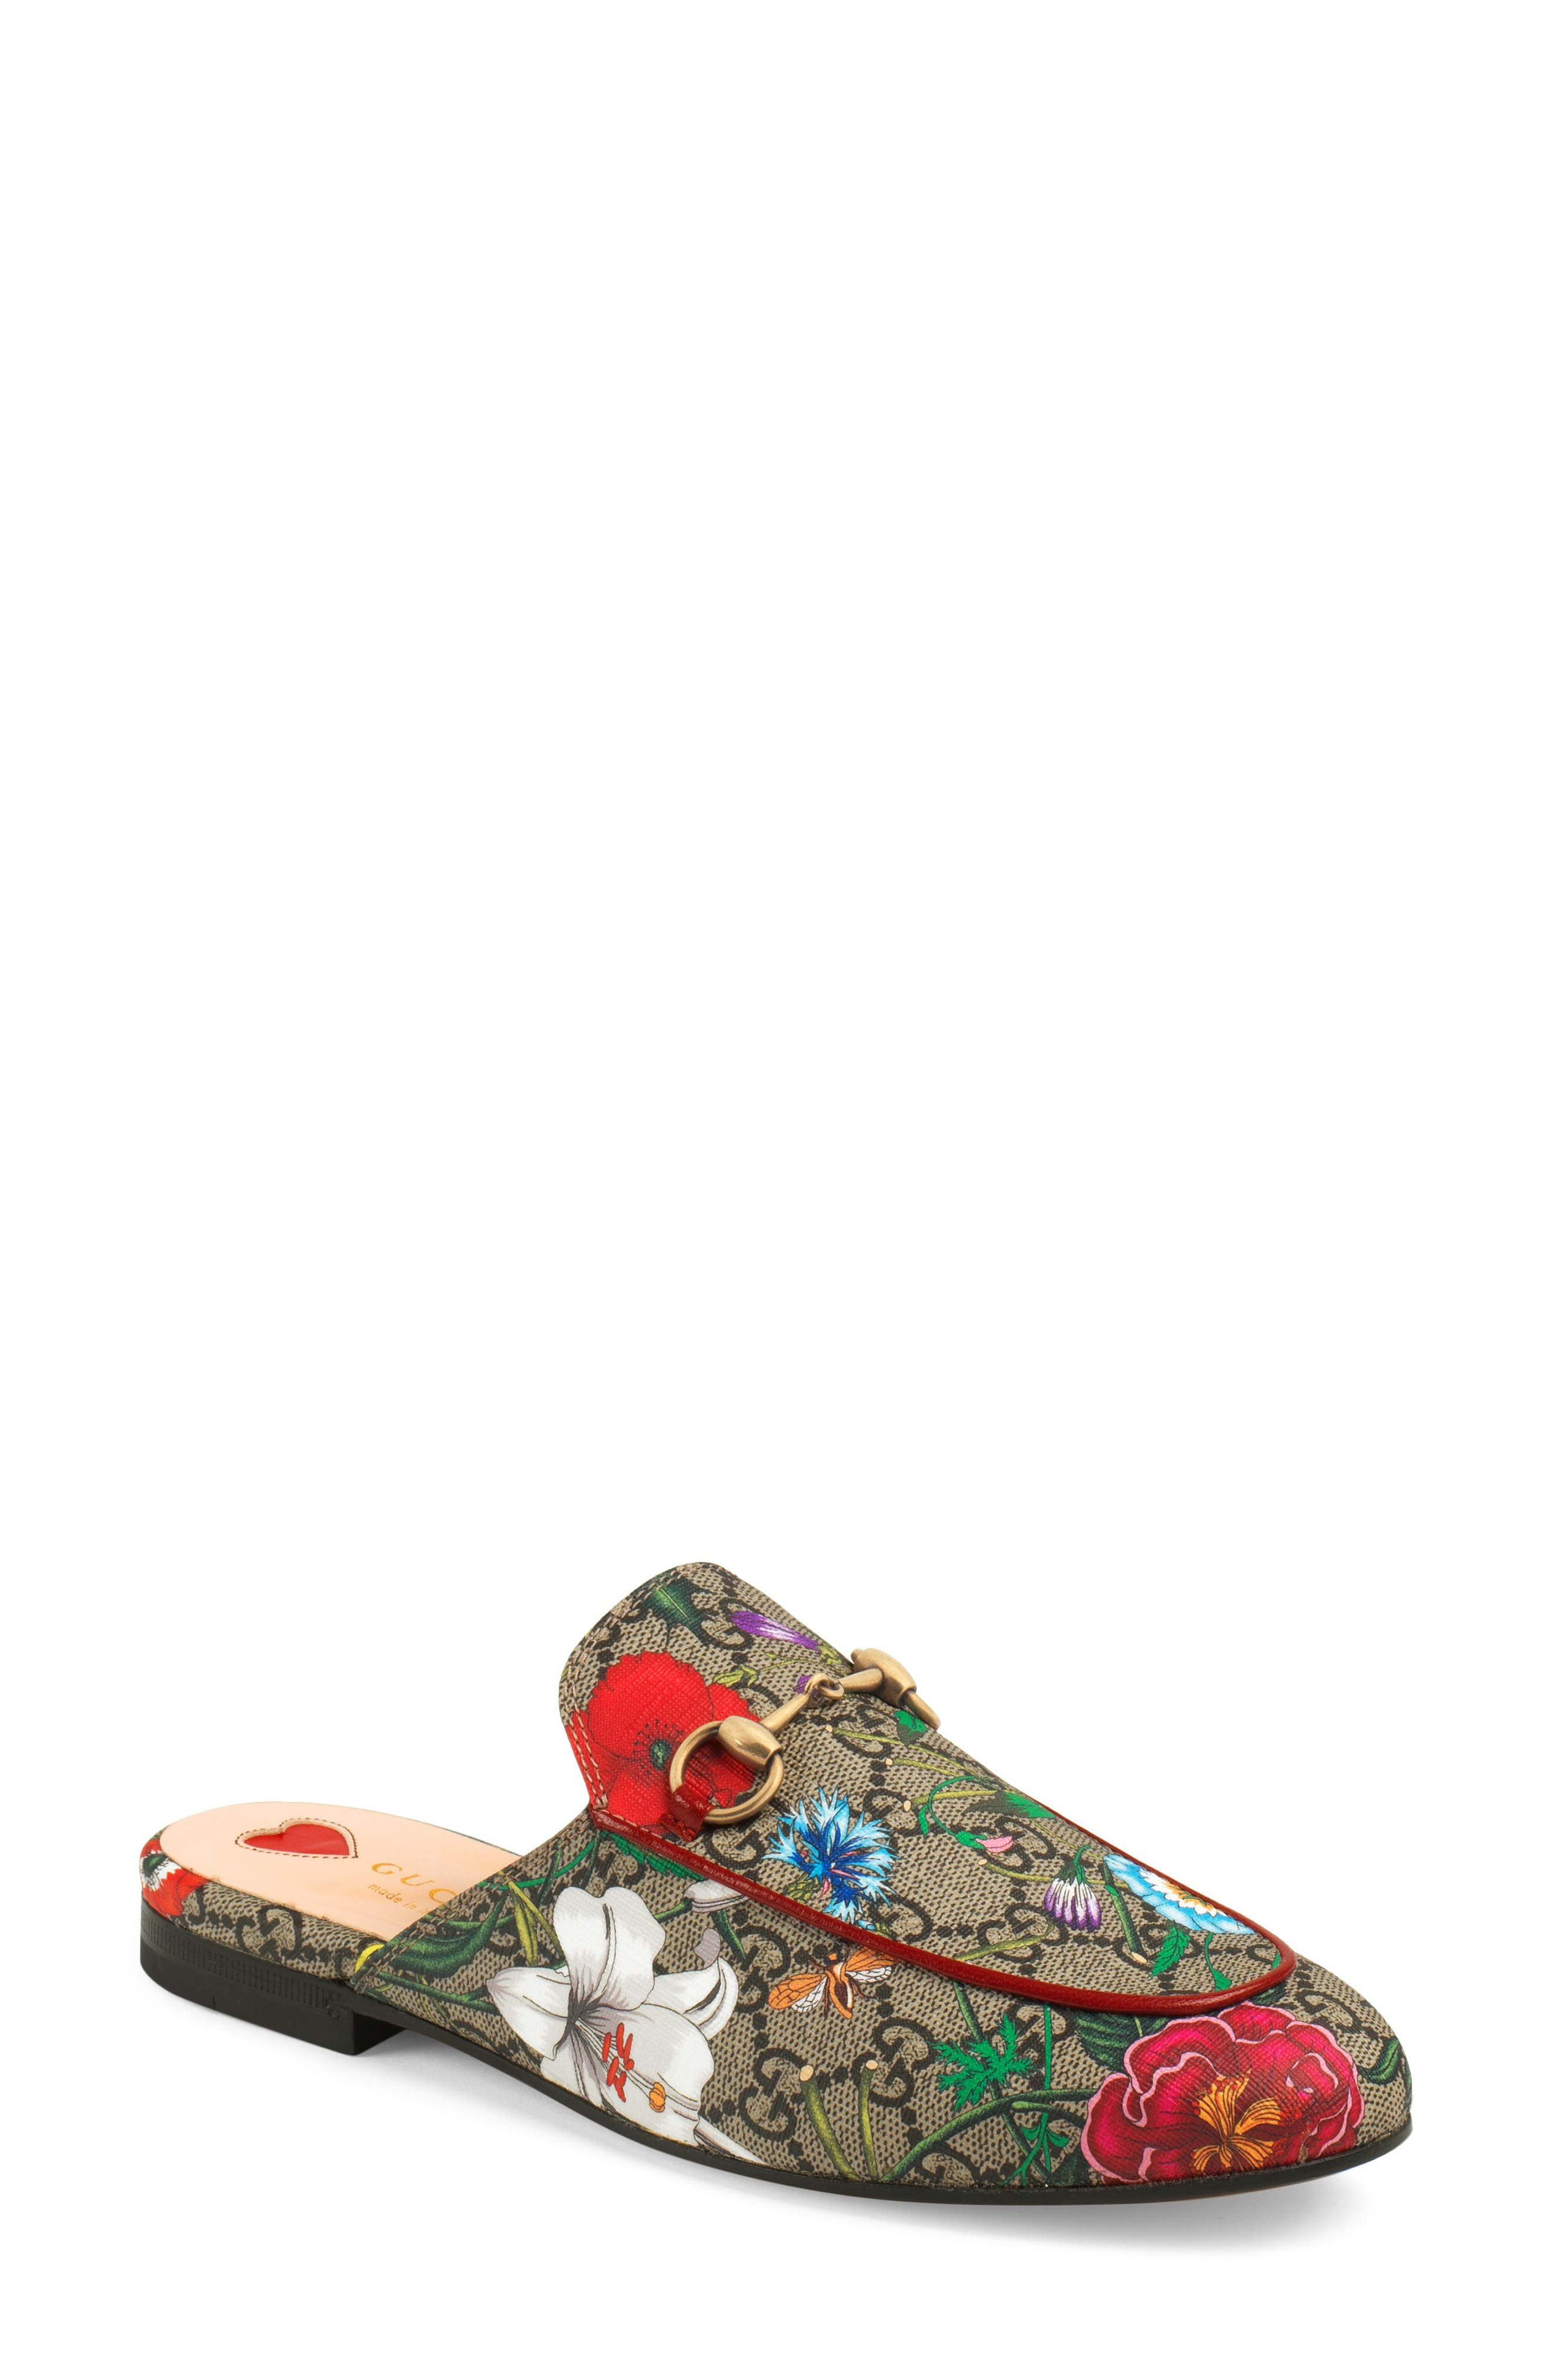 Gucci Princetown Floral GG Supreme Loafer Mule (Women)